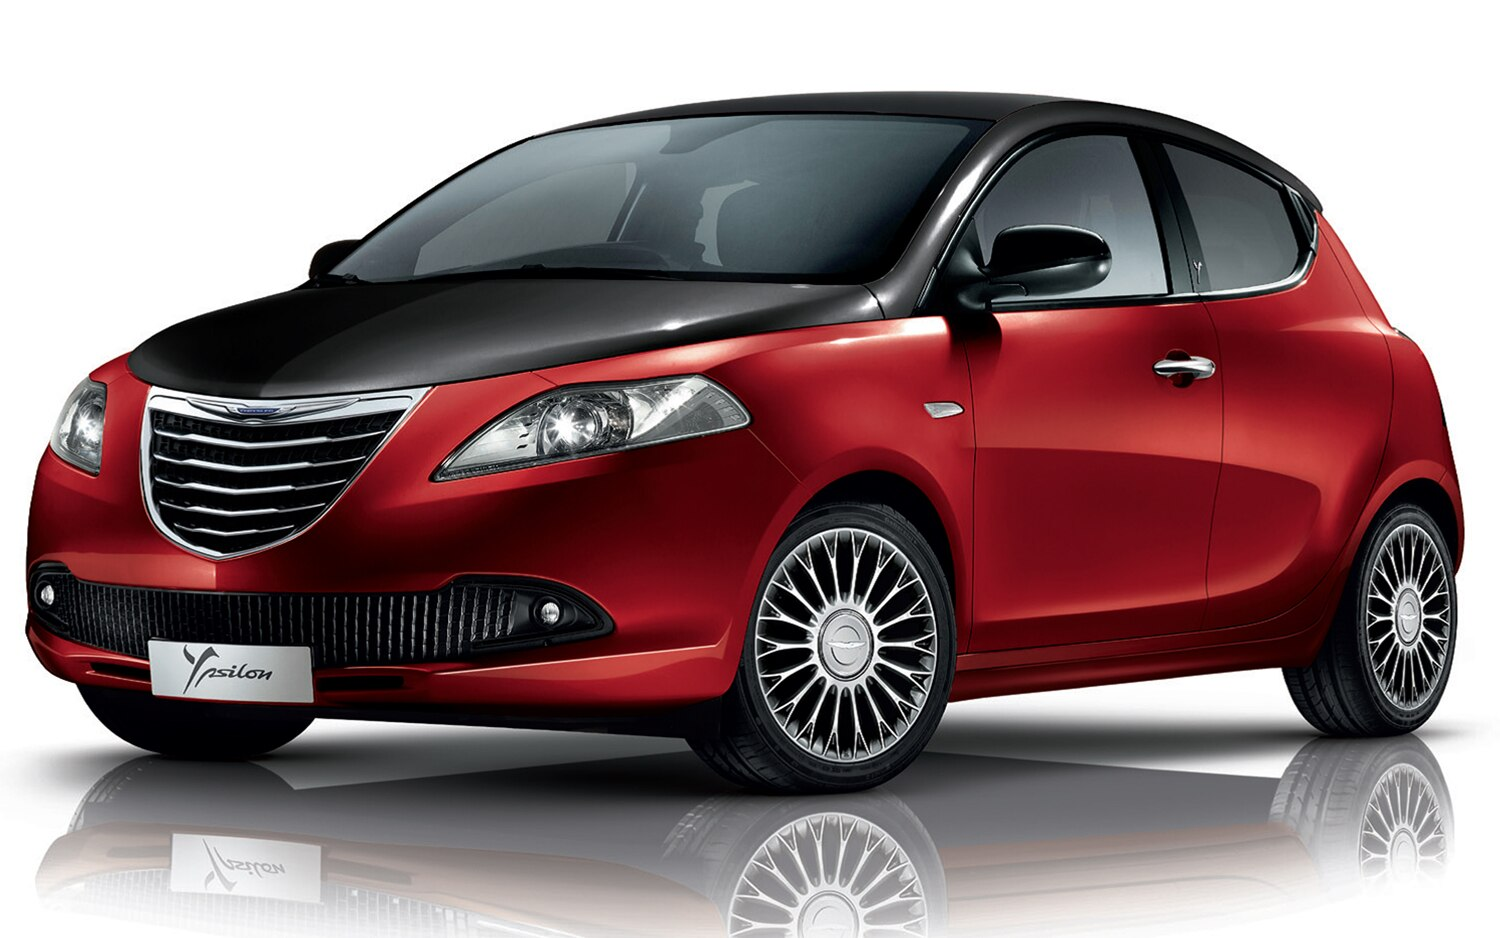 2012 Chrysler Ypsilon Red Black Front Three Quarter